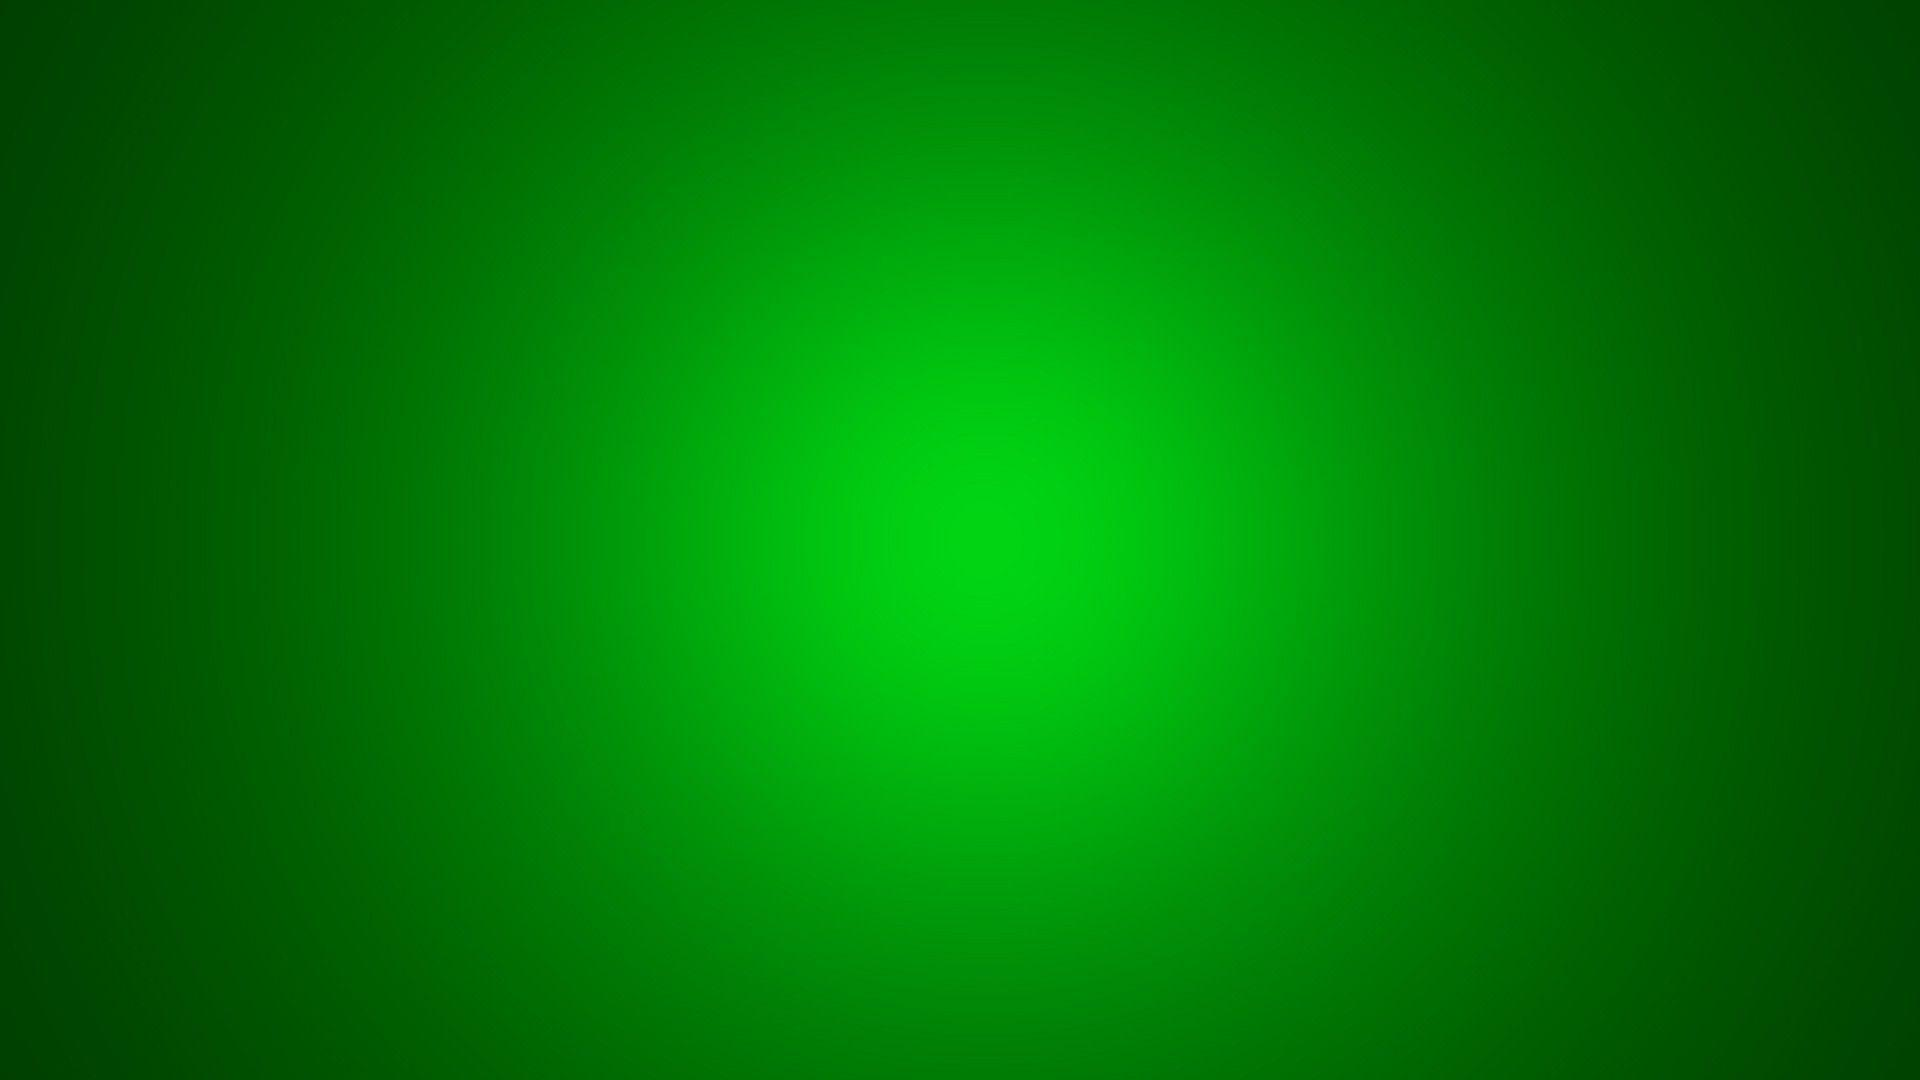 green background by l0rdn1k0n - photo #4